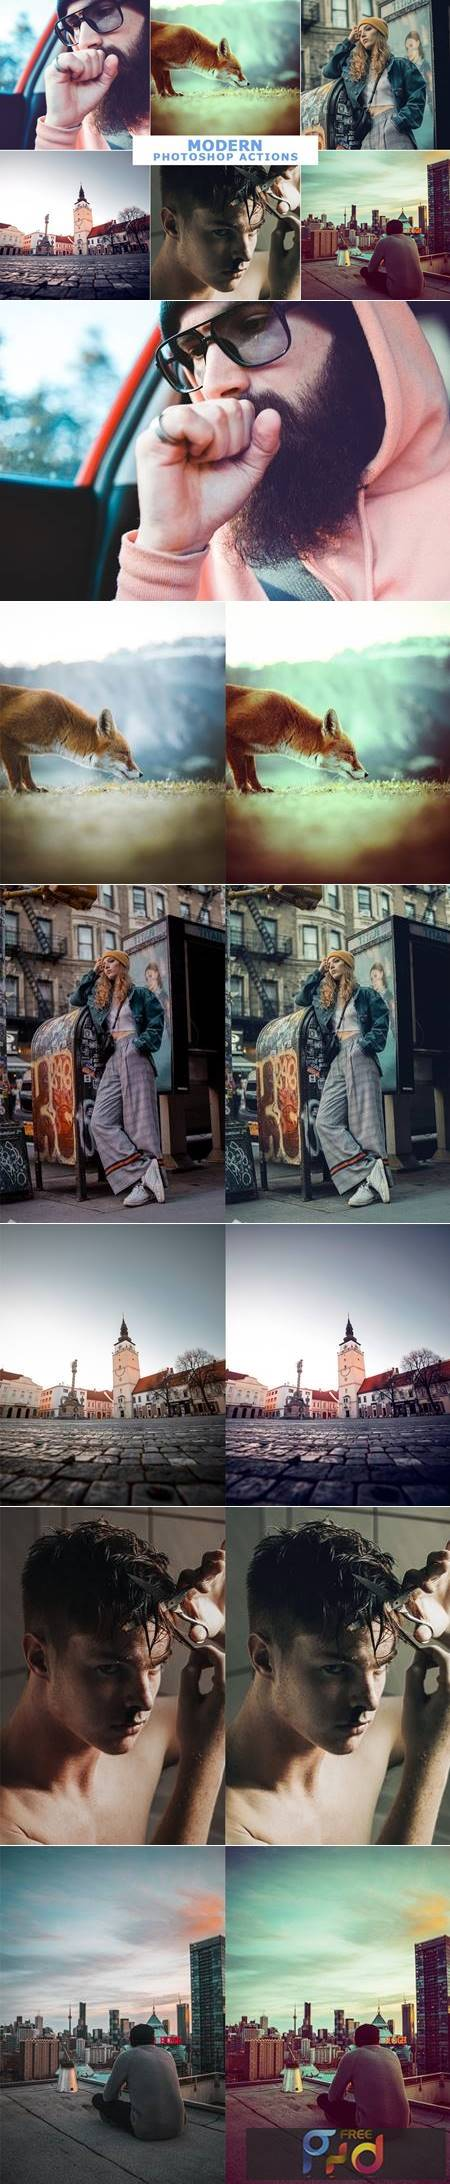 40 Modern Photoshop Actions 8 4723018 1